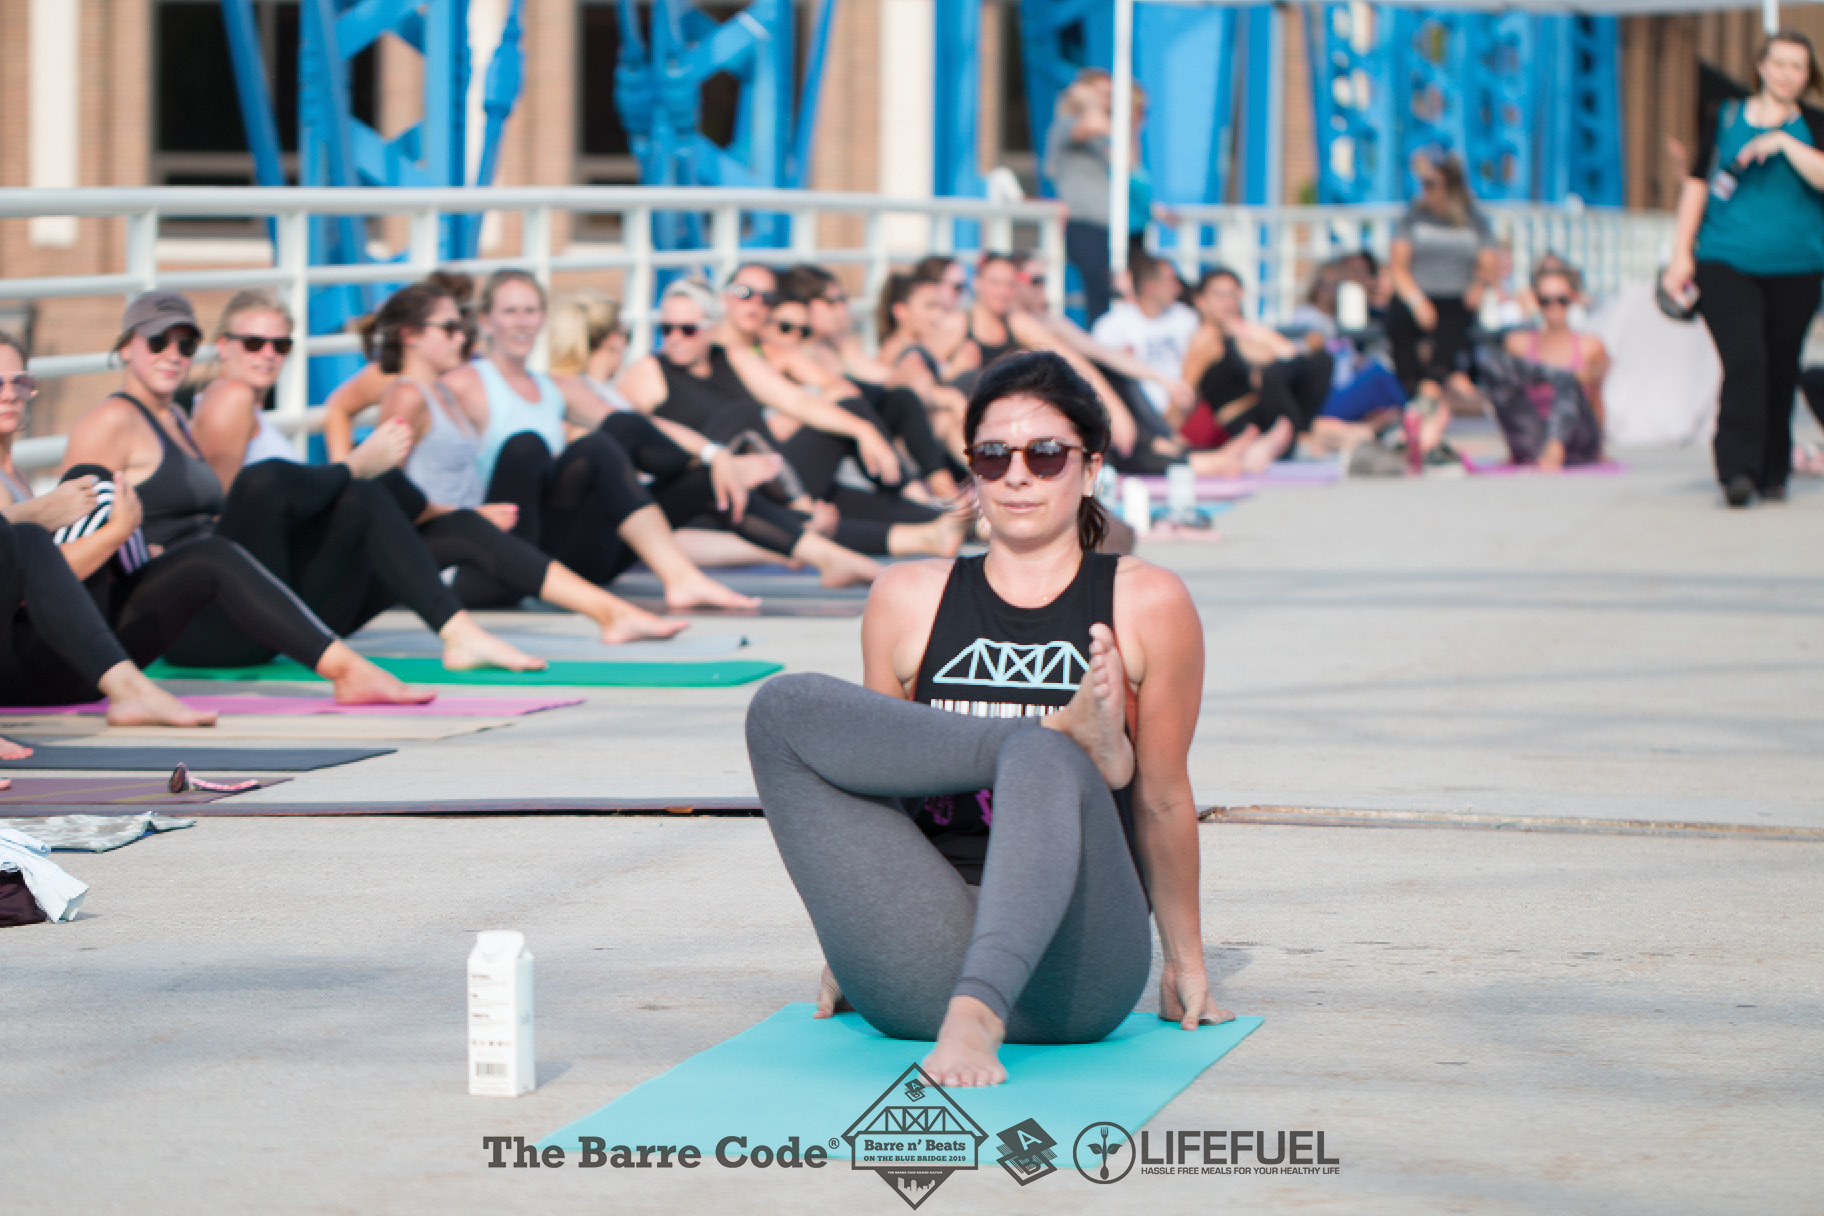 190805_the_barre_code_lifefuel_56.jpg